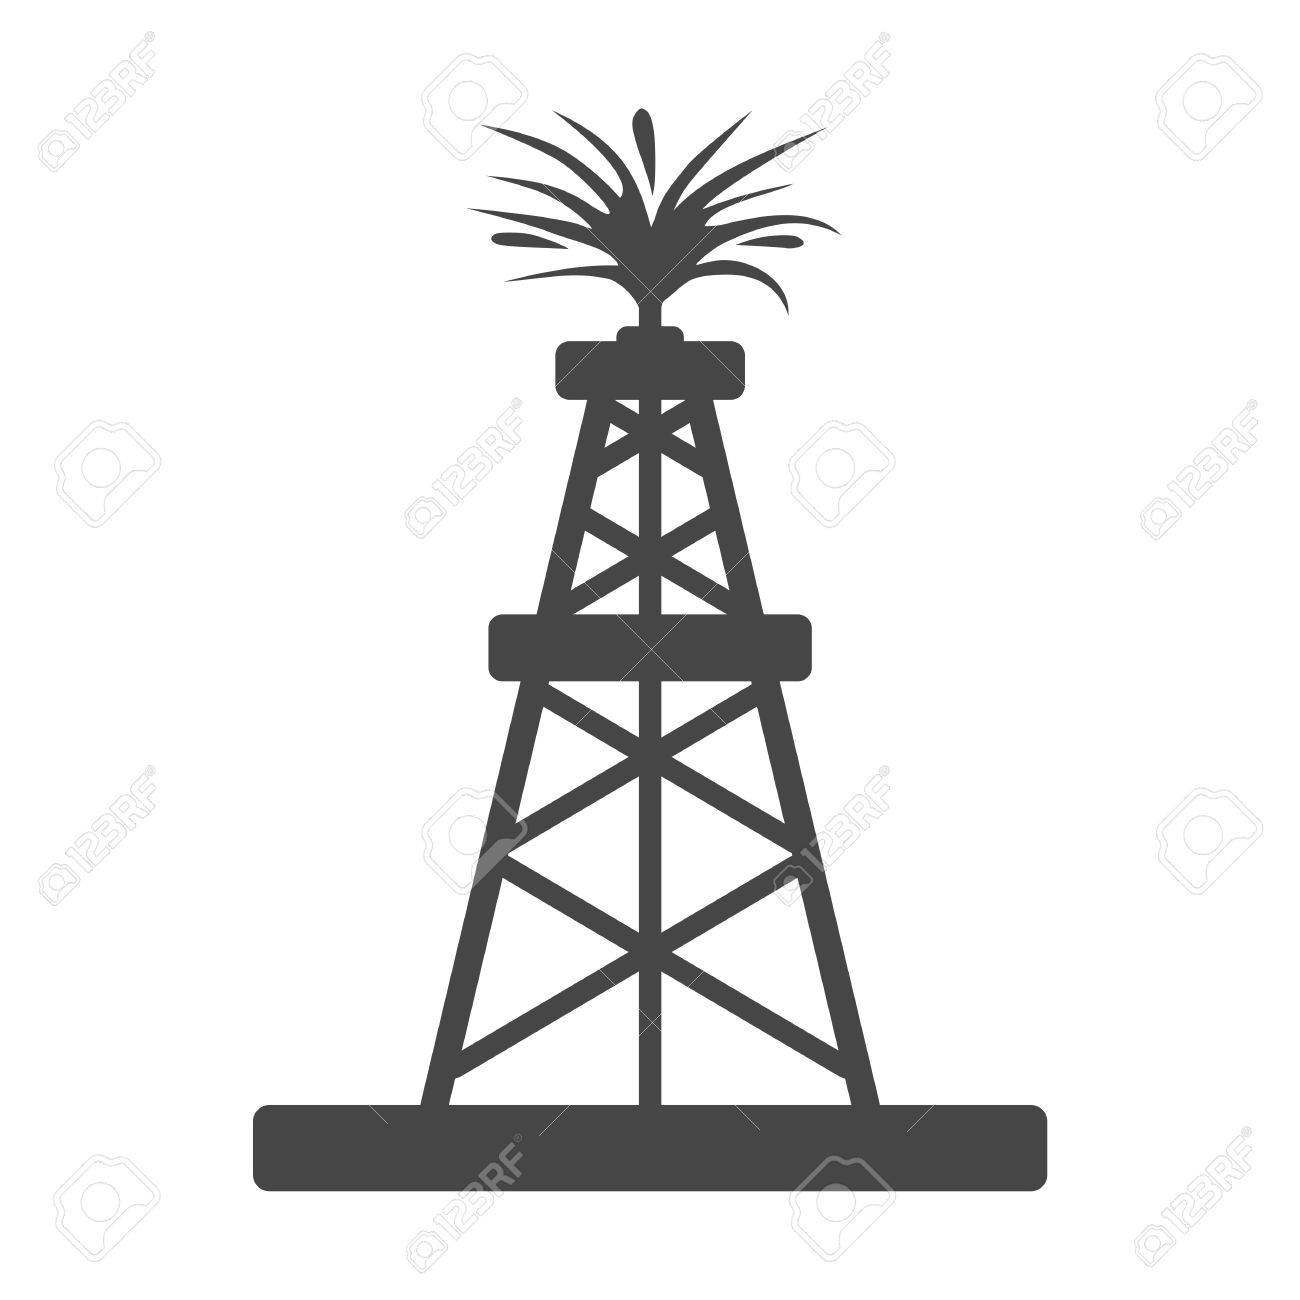 oil rig oil gusher sticker icon royalty free cliparts vectors and rh 123rf com oil rig clipart oil rig clipart png